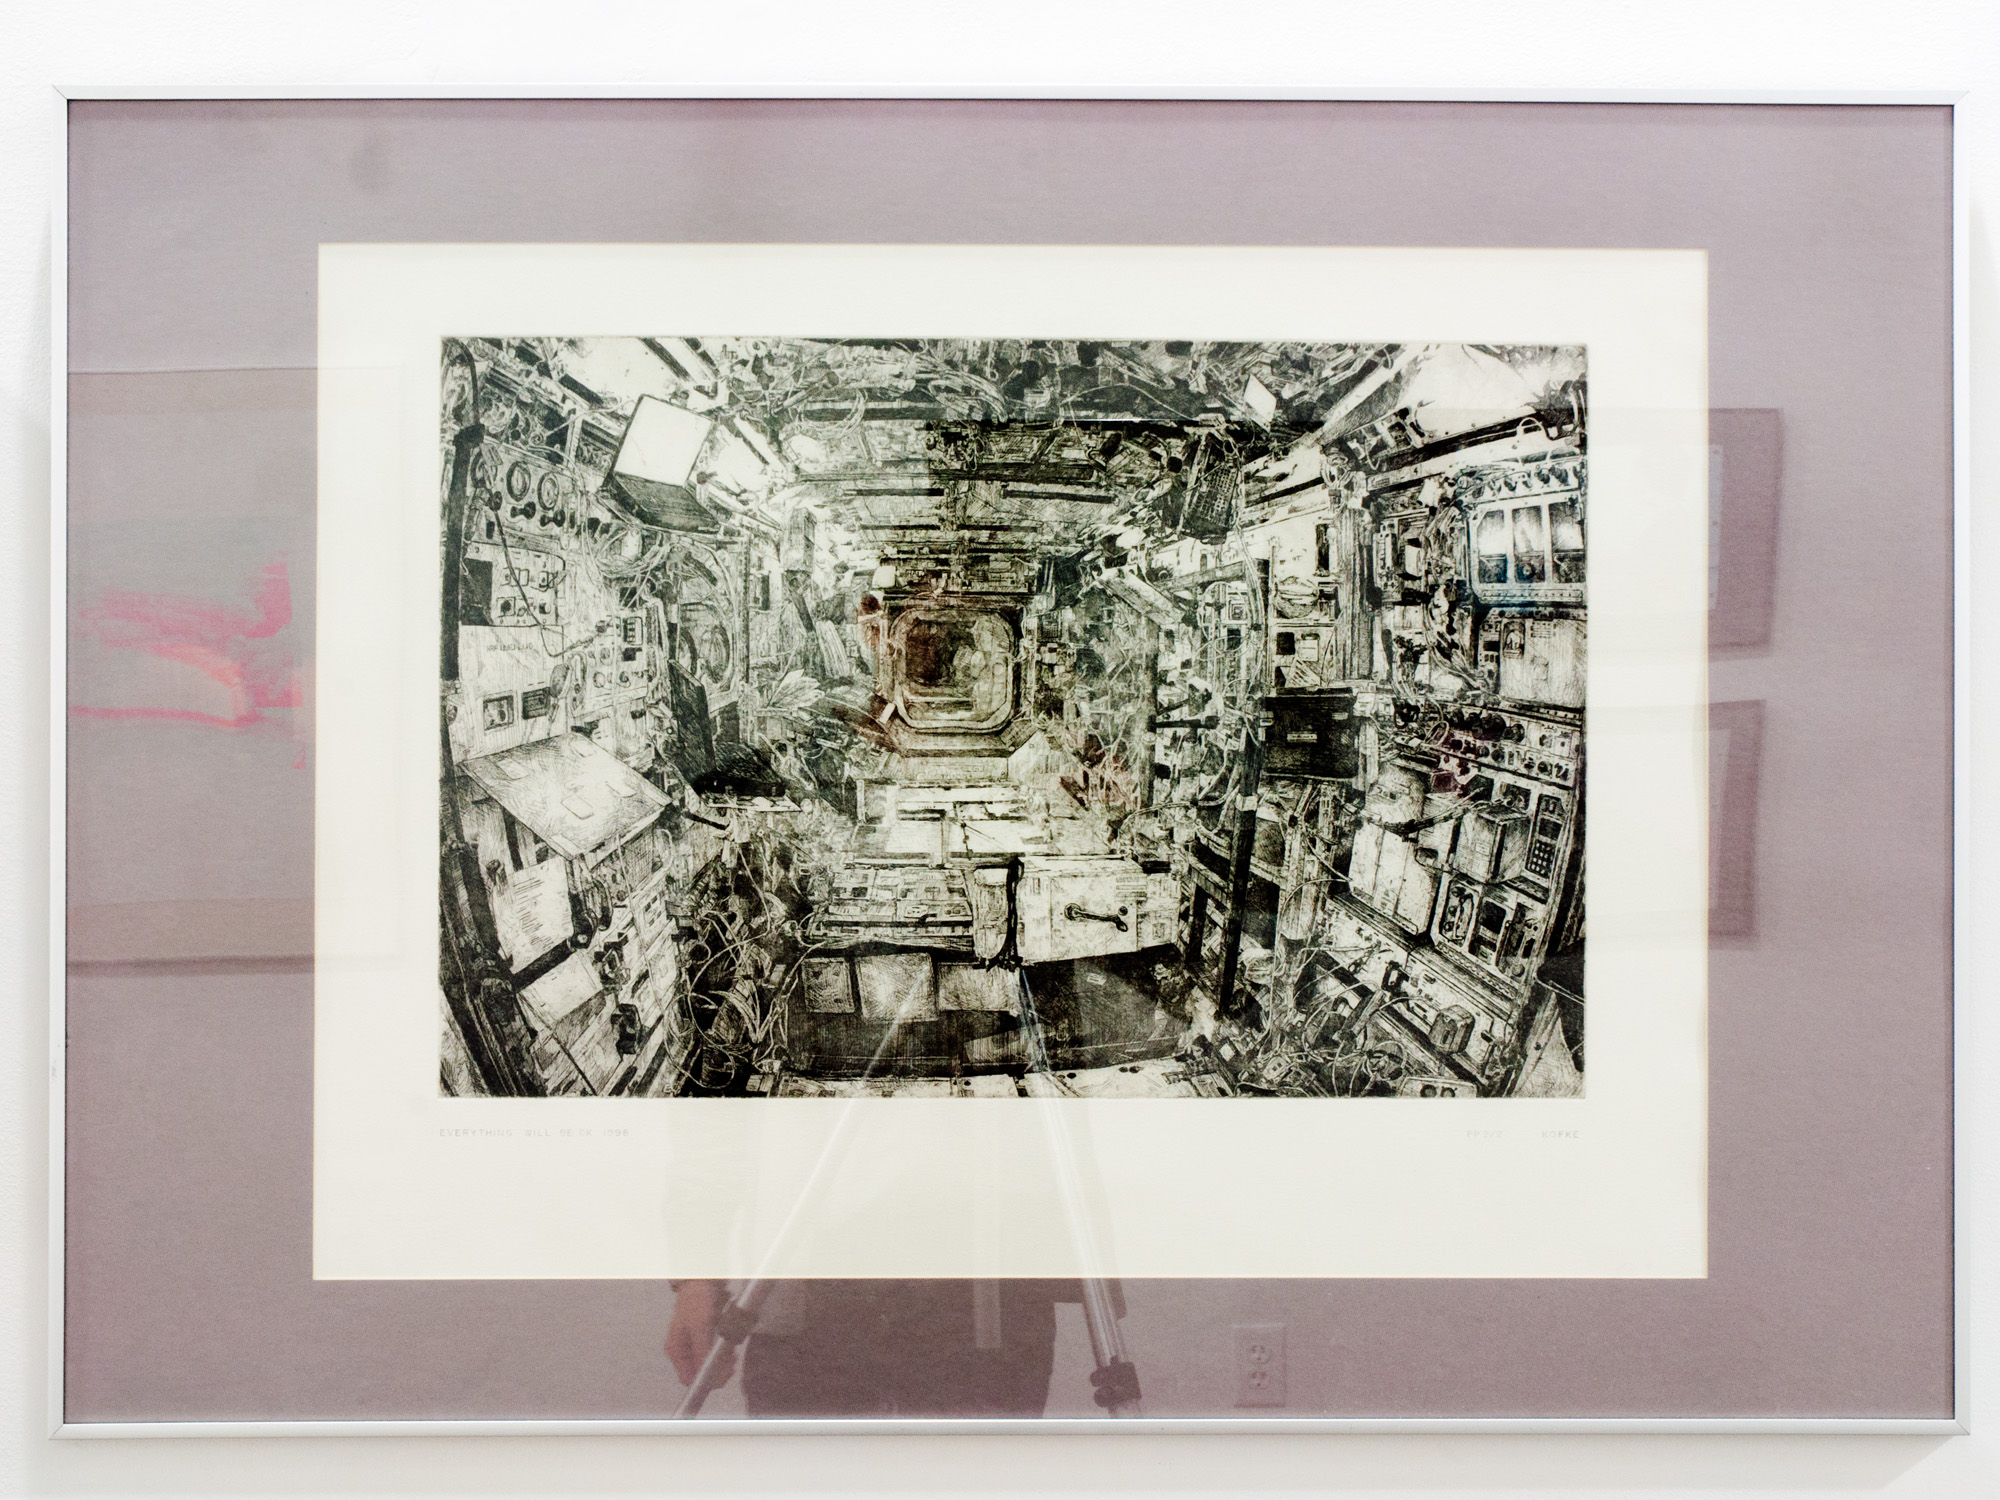 Everything Will Be Ok, 1998 etching 33 x 45 inches JKO 001G